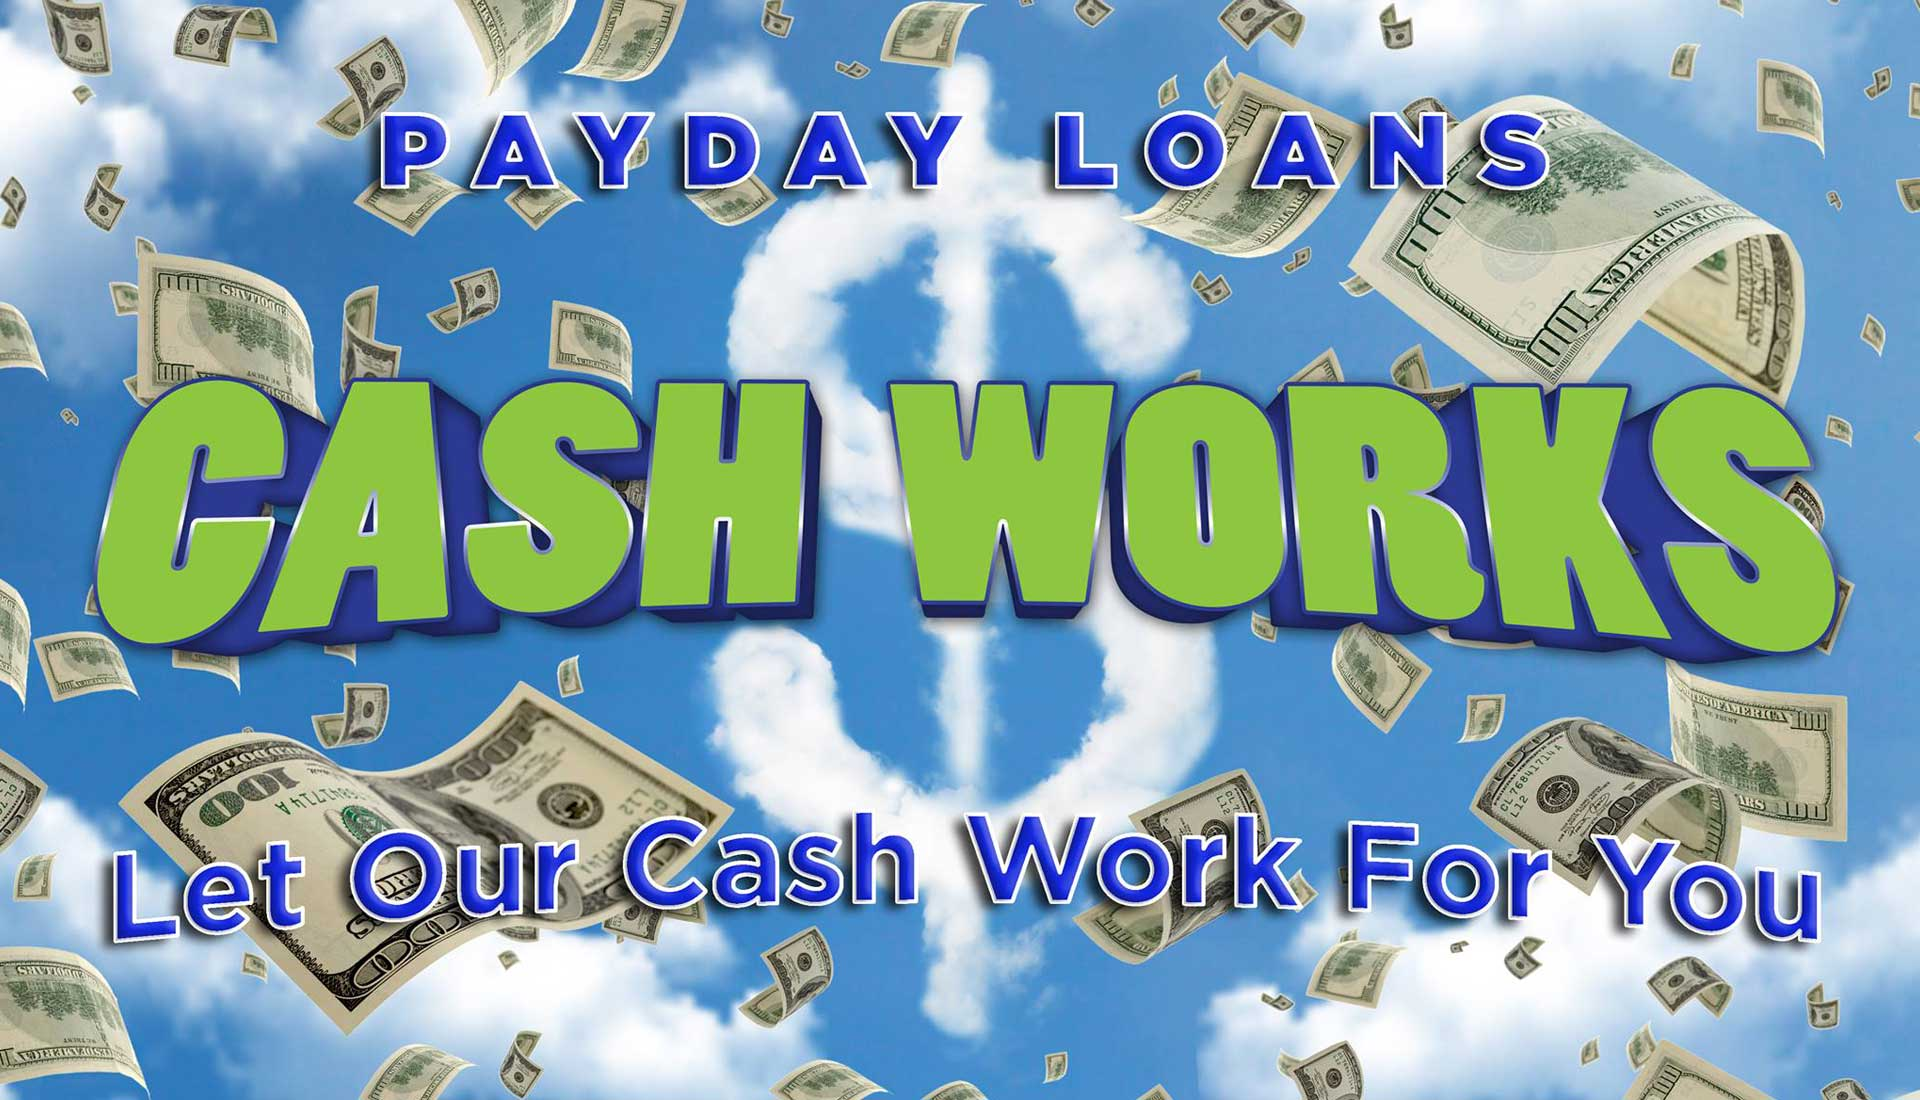 Online payday loans in iowa picture 7